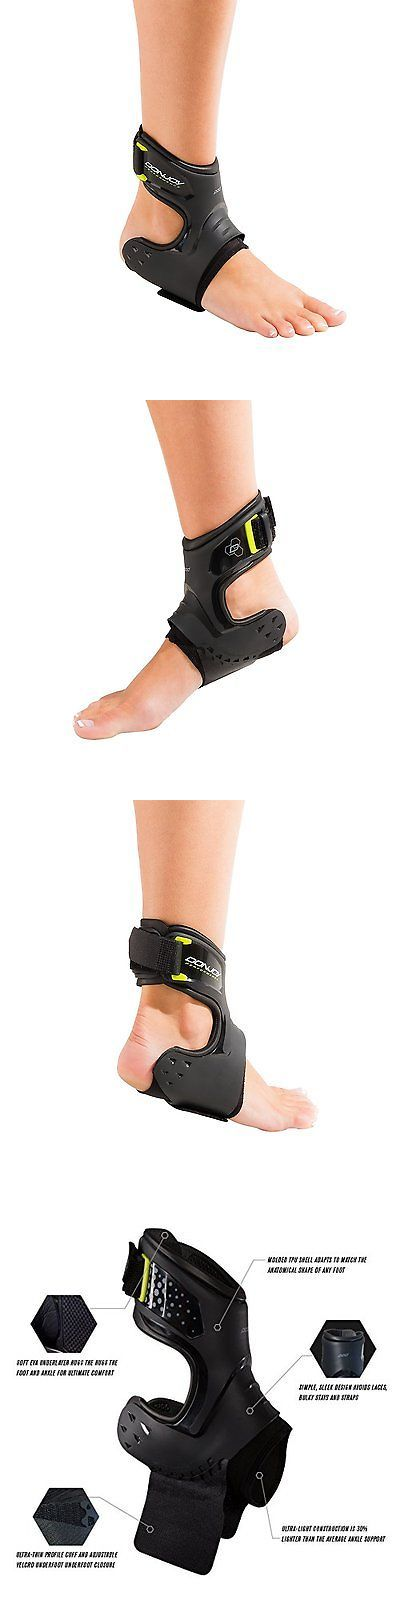 Orthotics Braces and Sleeves: Donjoy Performance Pod Ankle Brace, Best Support For Stability, Ankle Sprain, - -> BUY IT NOW ONLY: $60.59 on eBay!